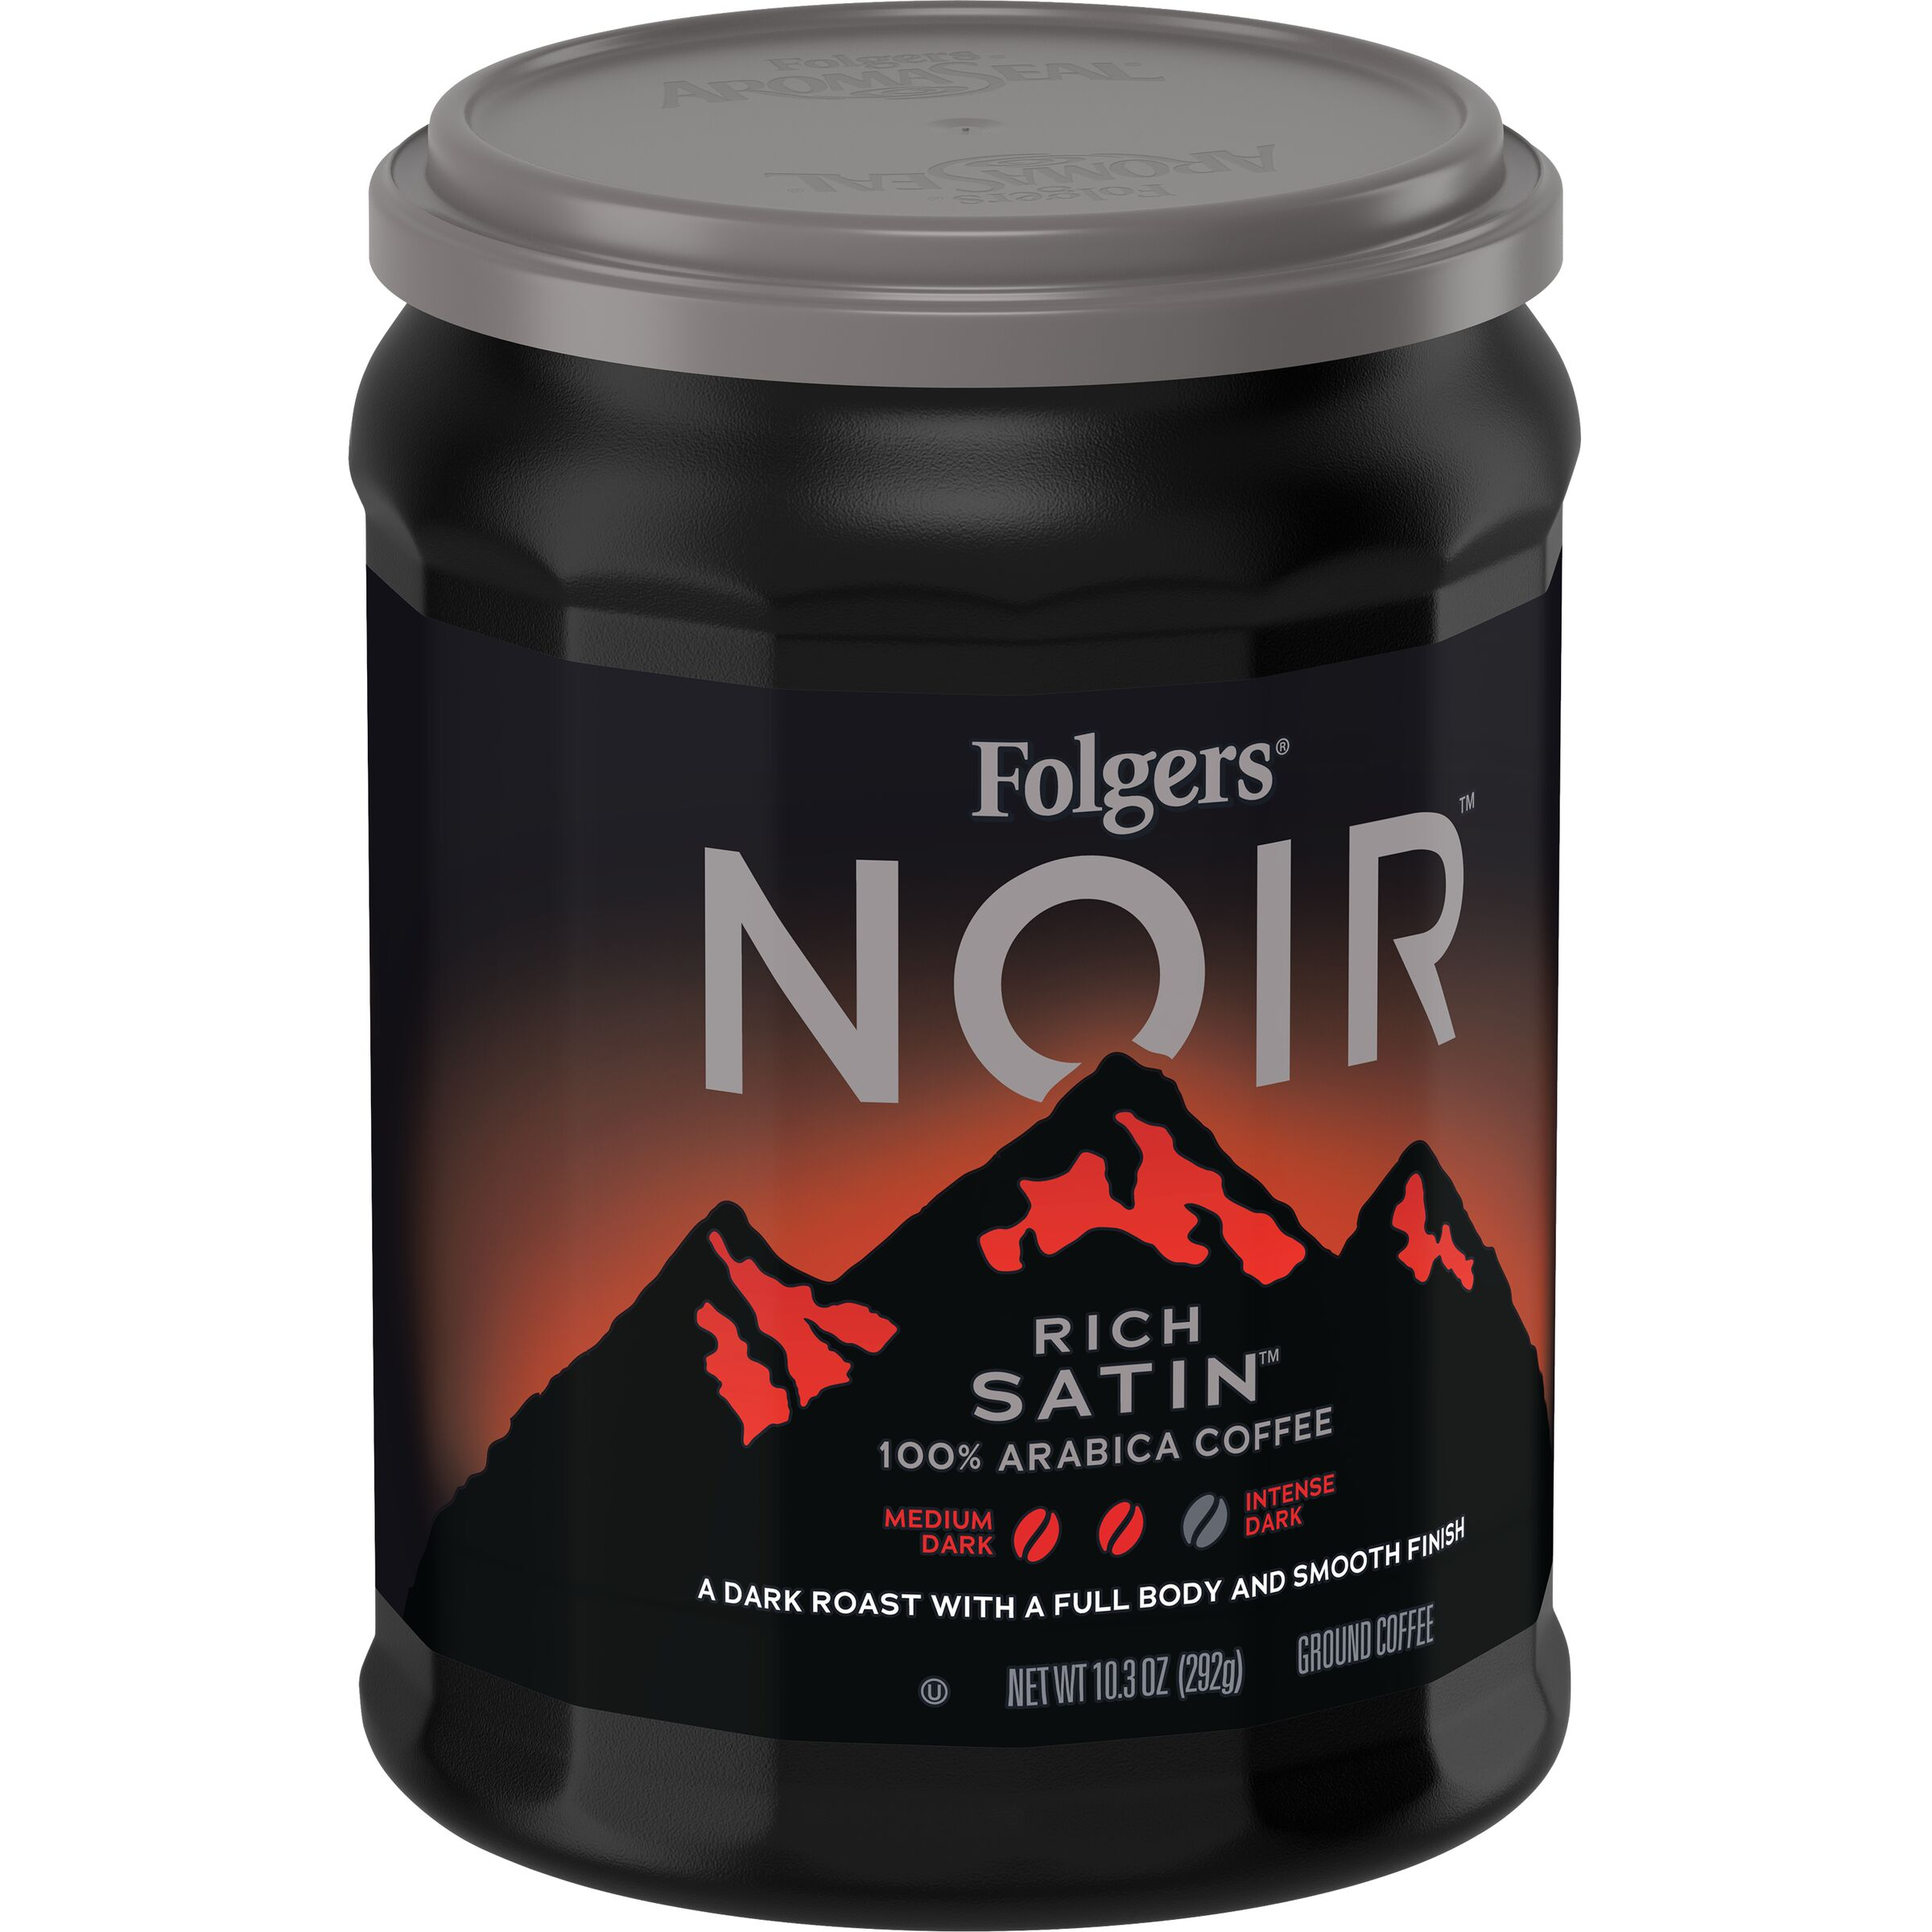 Folgers Noir Rich Satin™ Ground Coffee